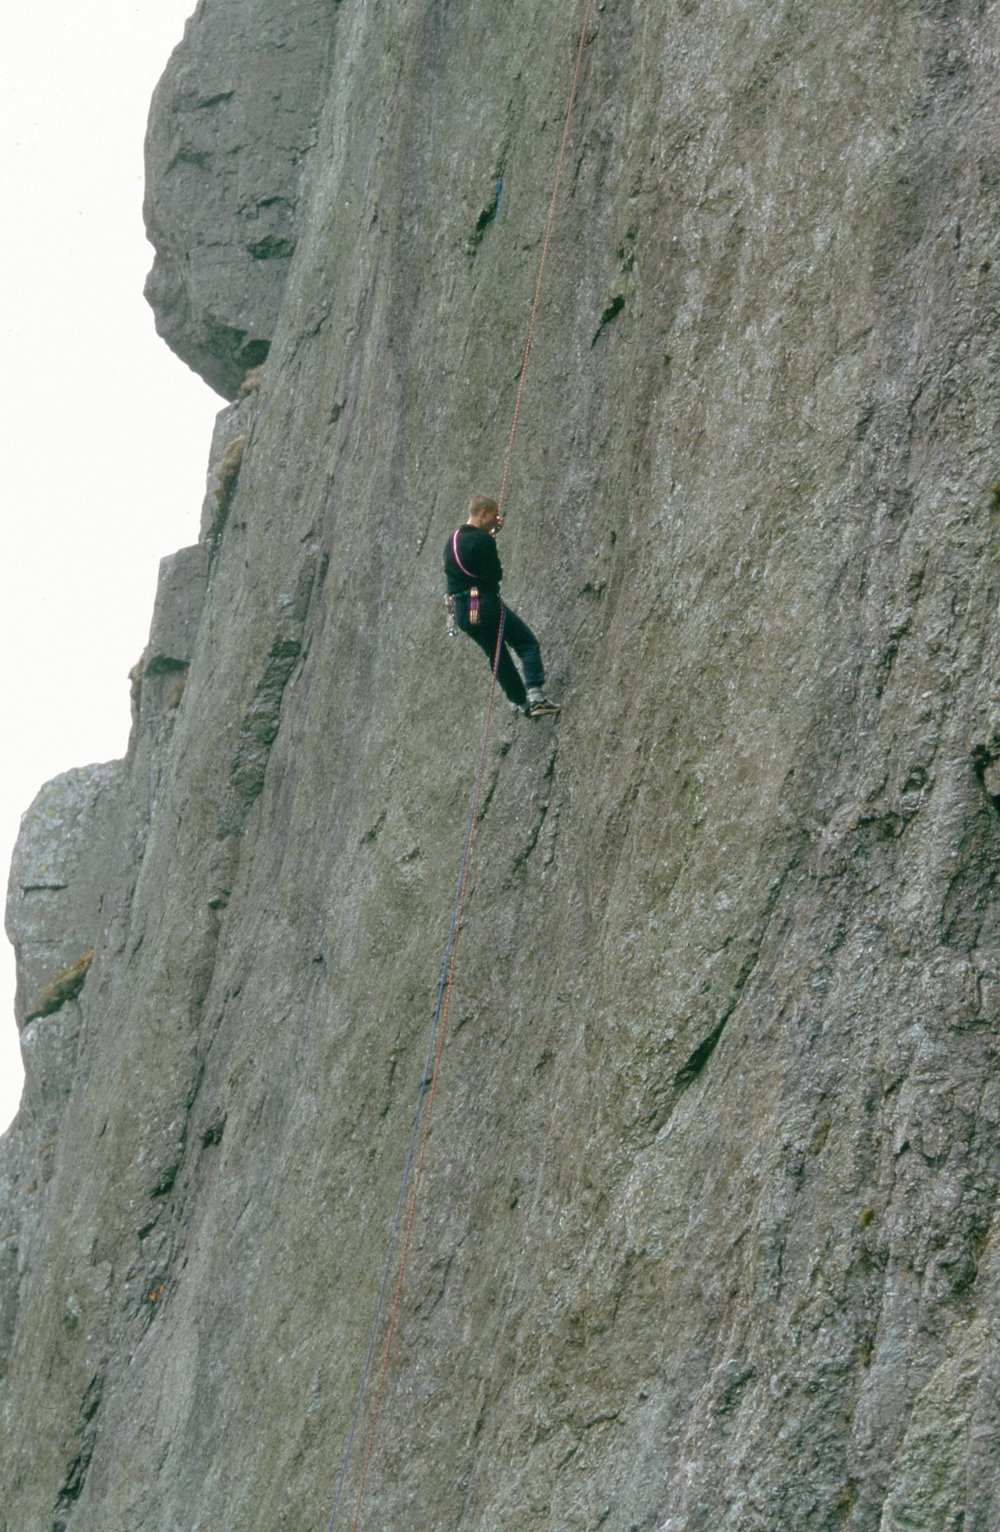 Abseiling down to check the protection on Indian Face E9 6c, prior to making the third ascent in 1996.  Photo: Gresham collection